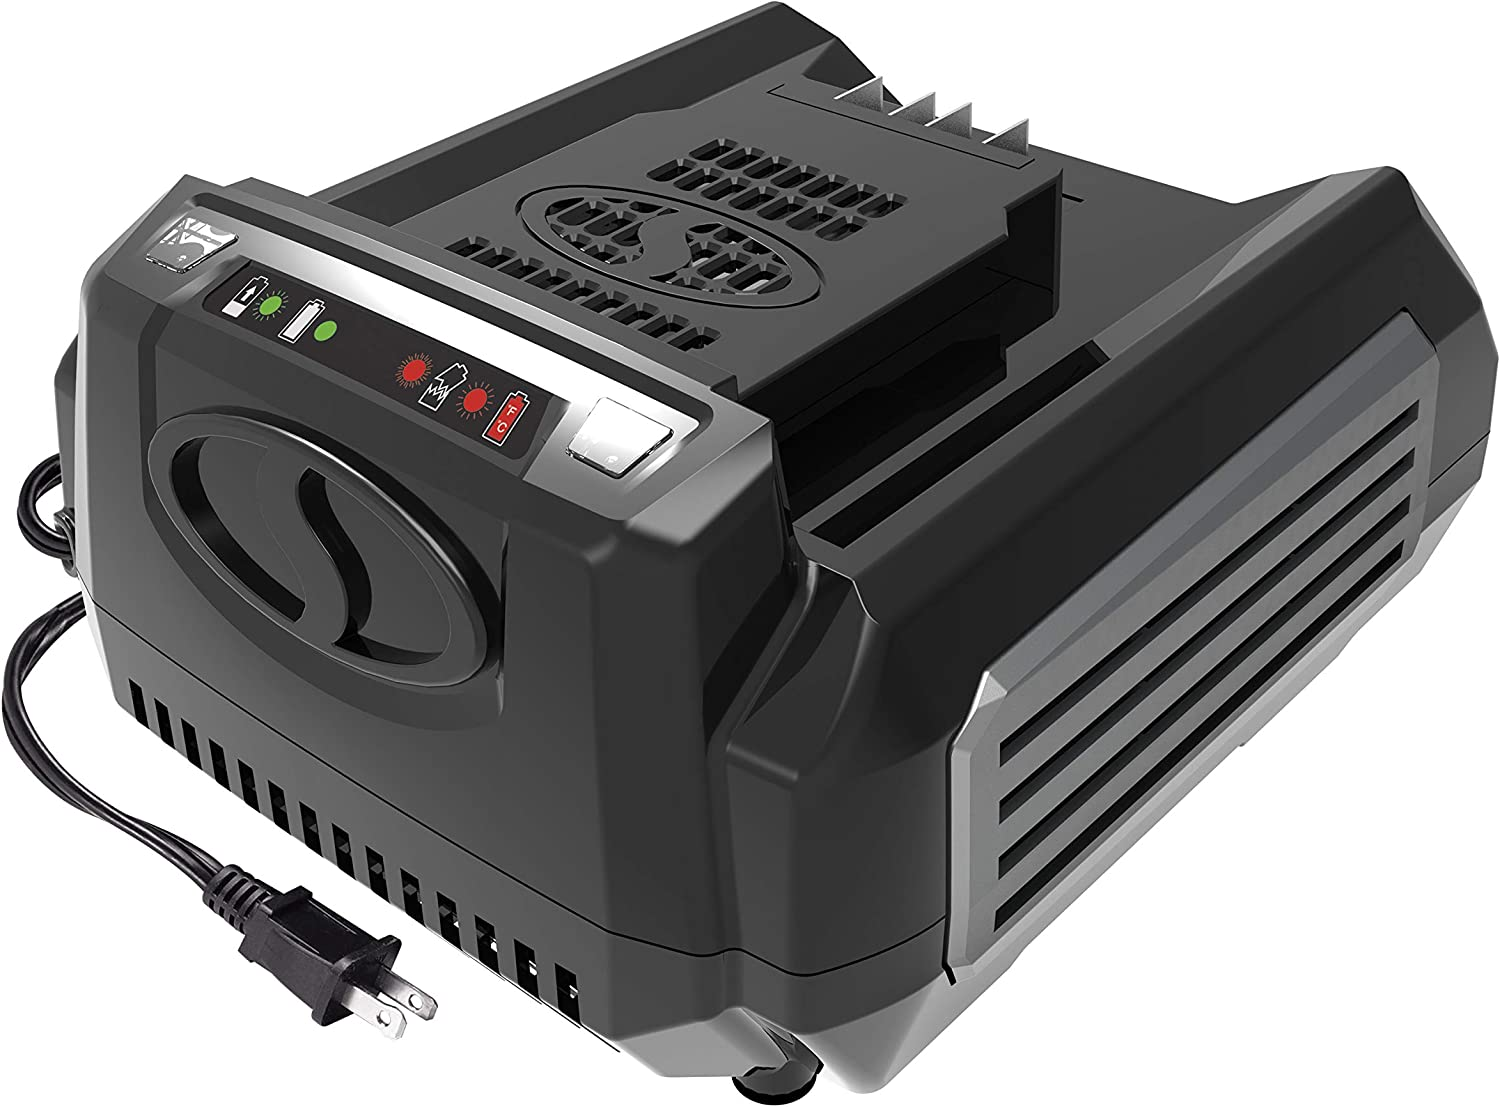 Sun Joe iON100V-RCH 100-Volt Rapid Charger for iON100V Series